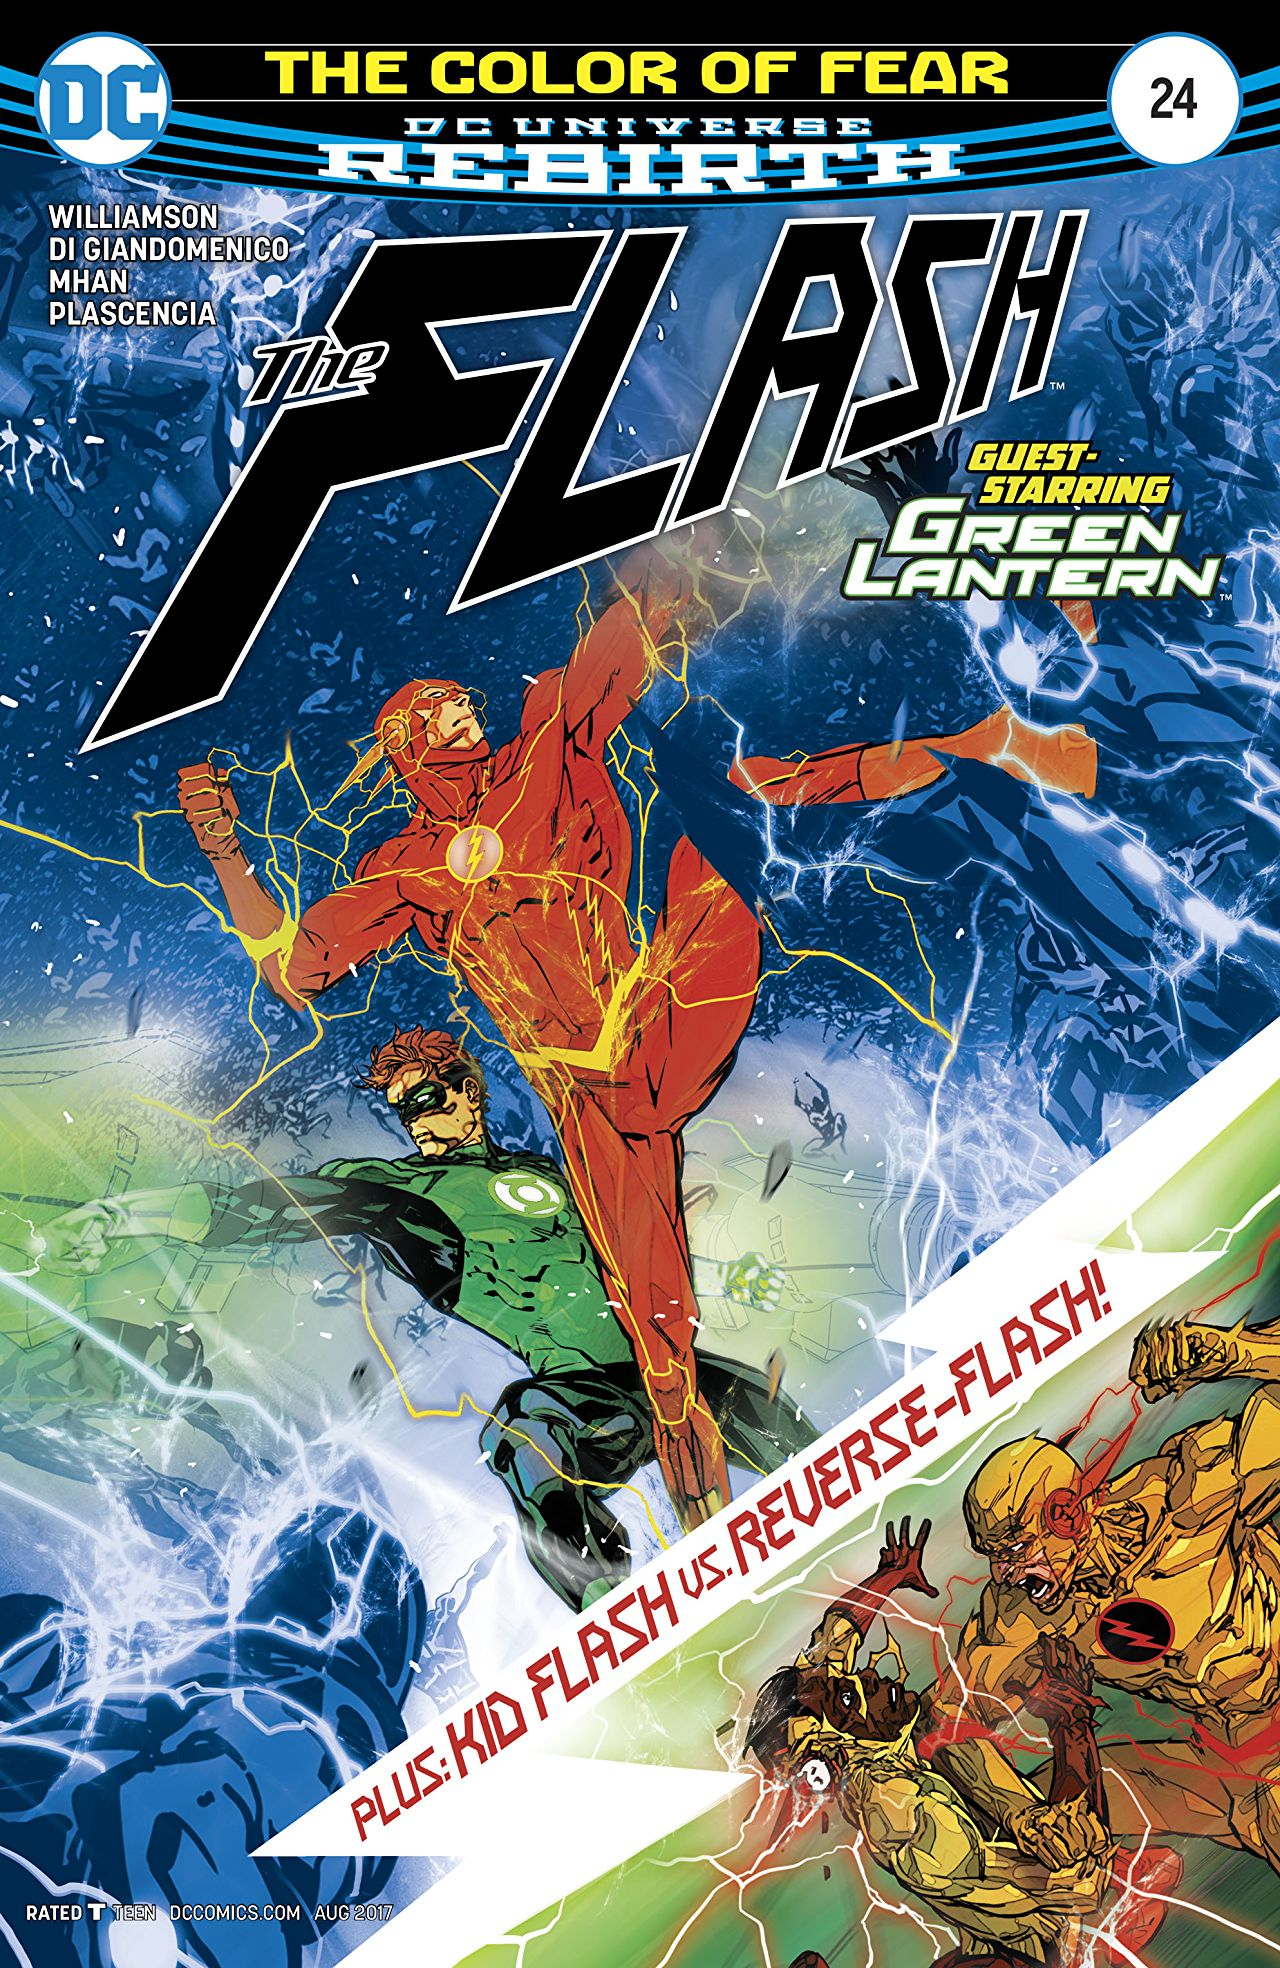 The Flash #24 cover by Carmine Di Giandomenico